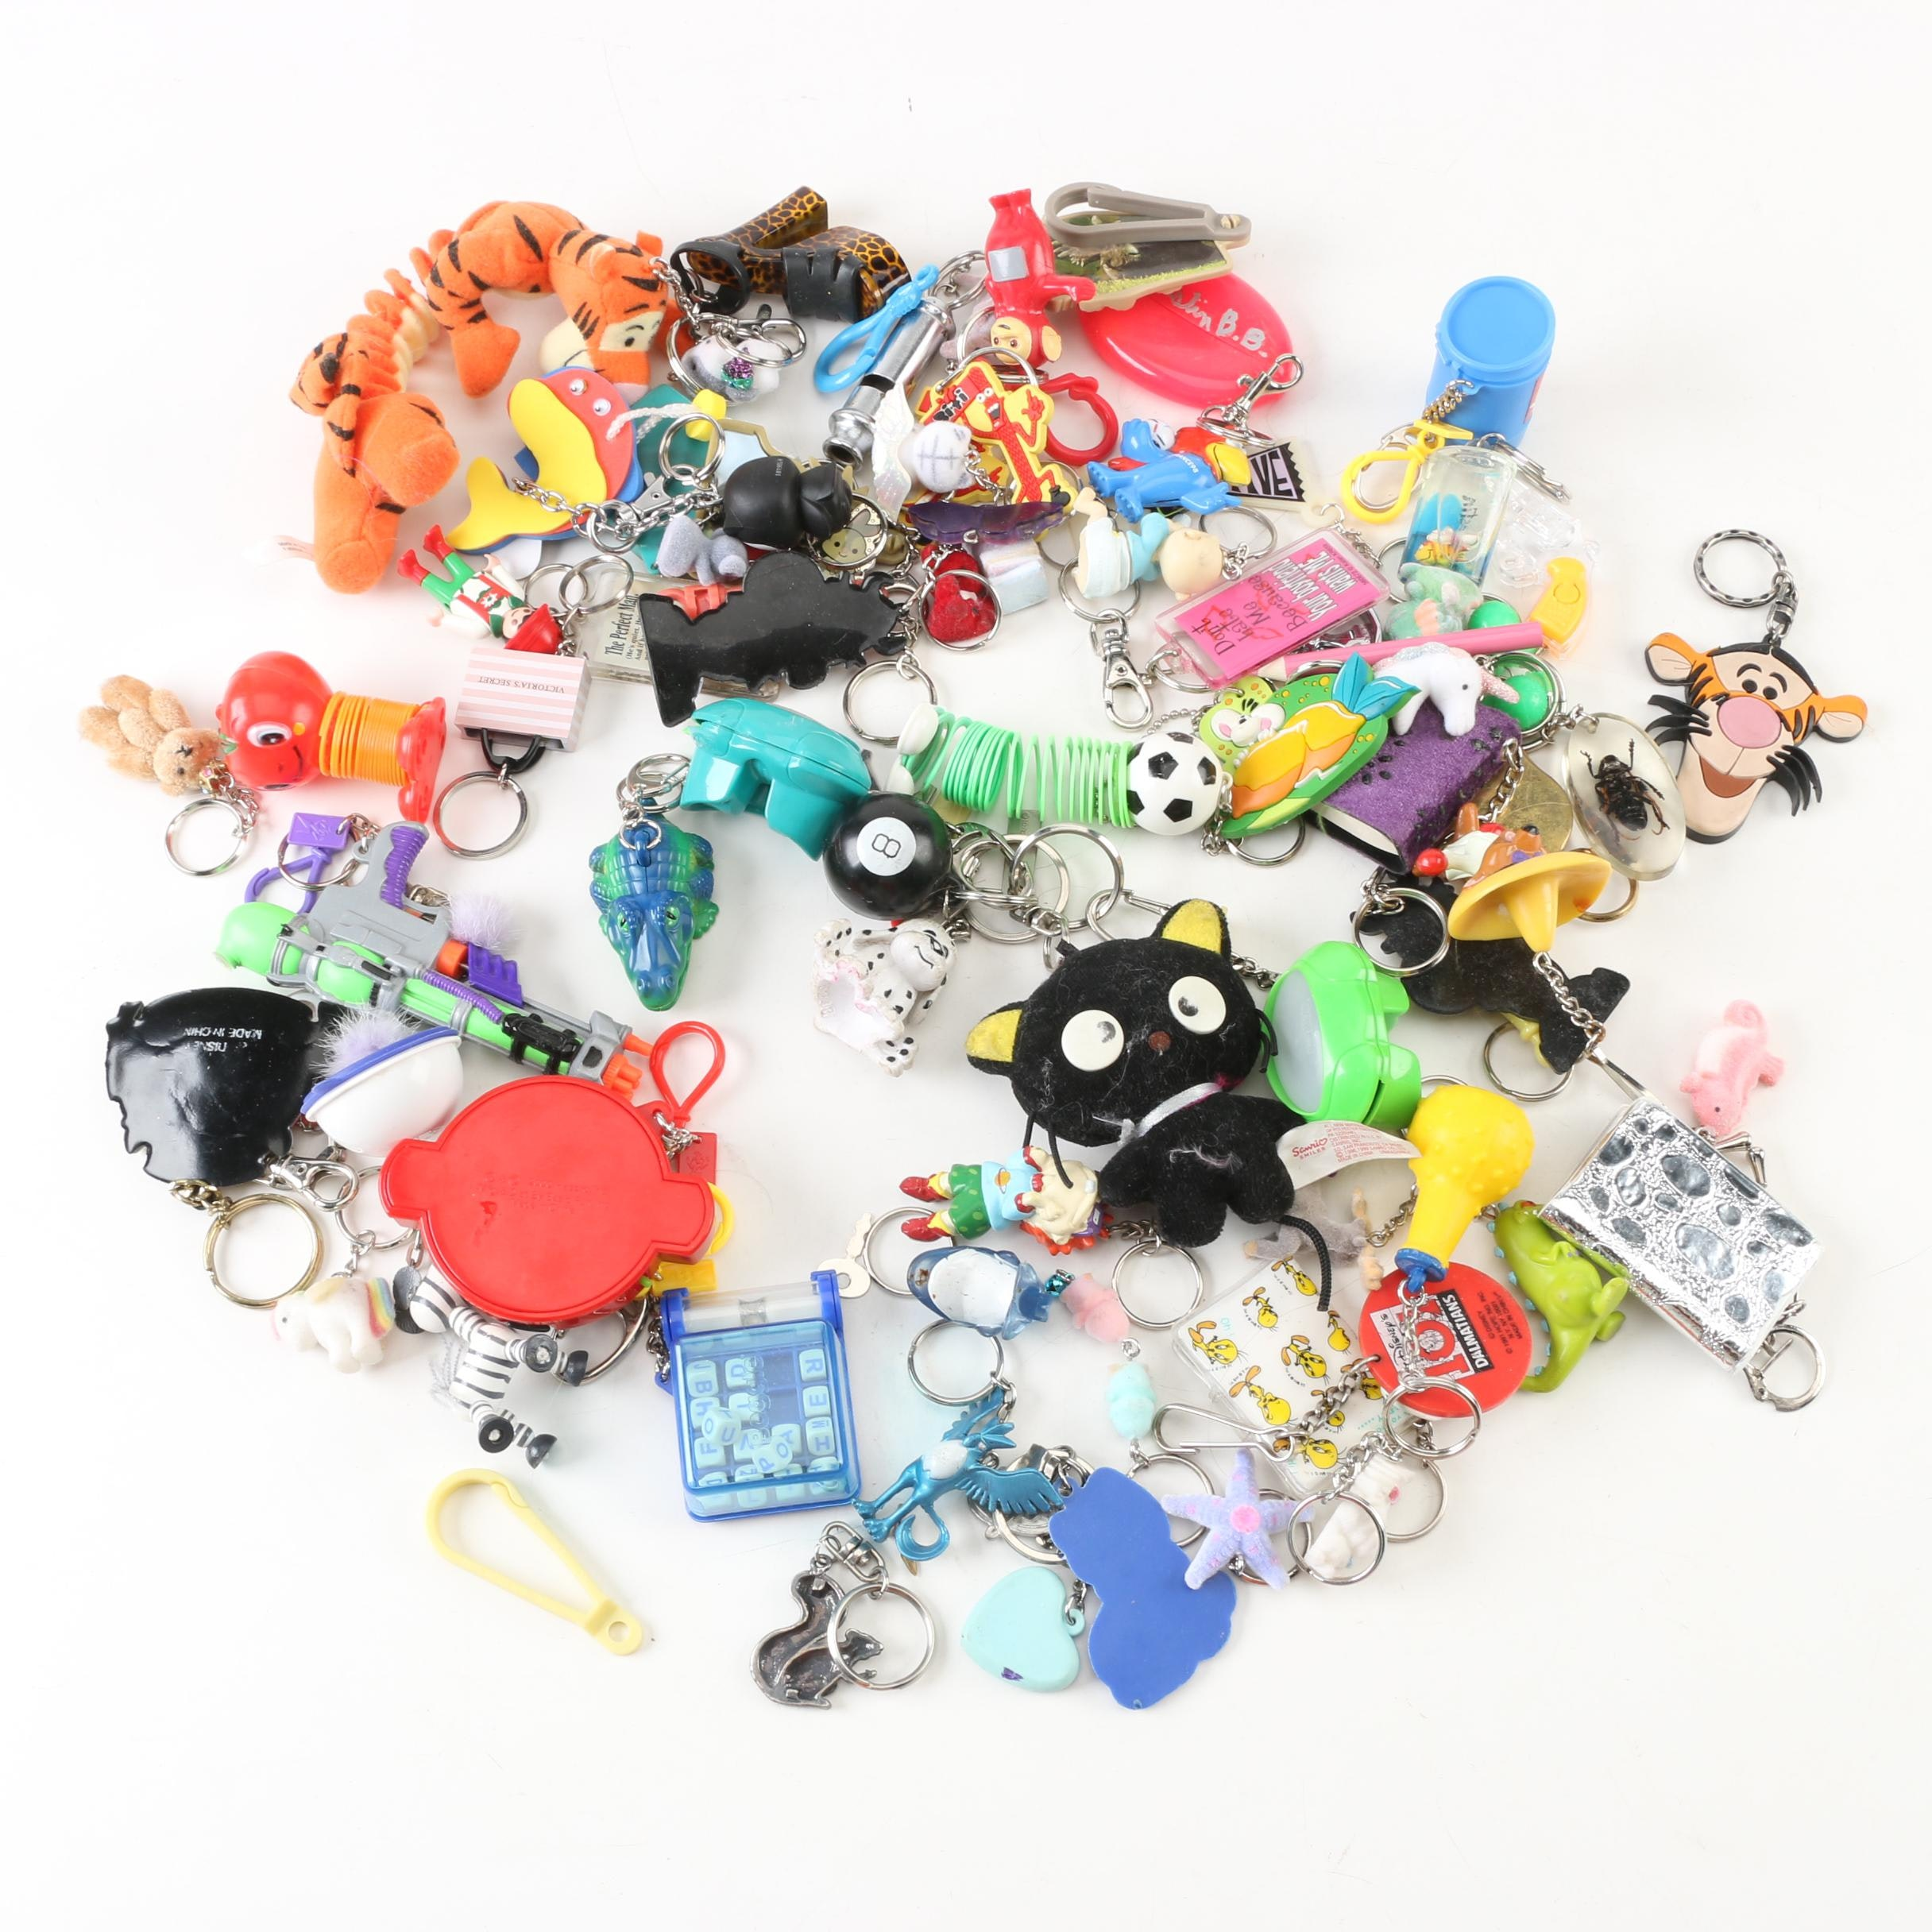 Tigger, Teletubbies and Other Character Keychains